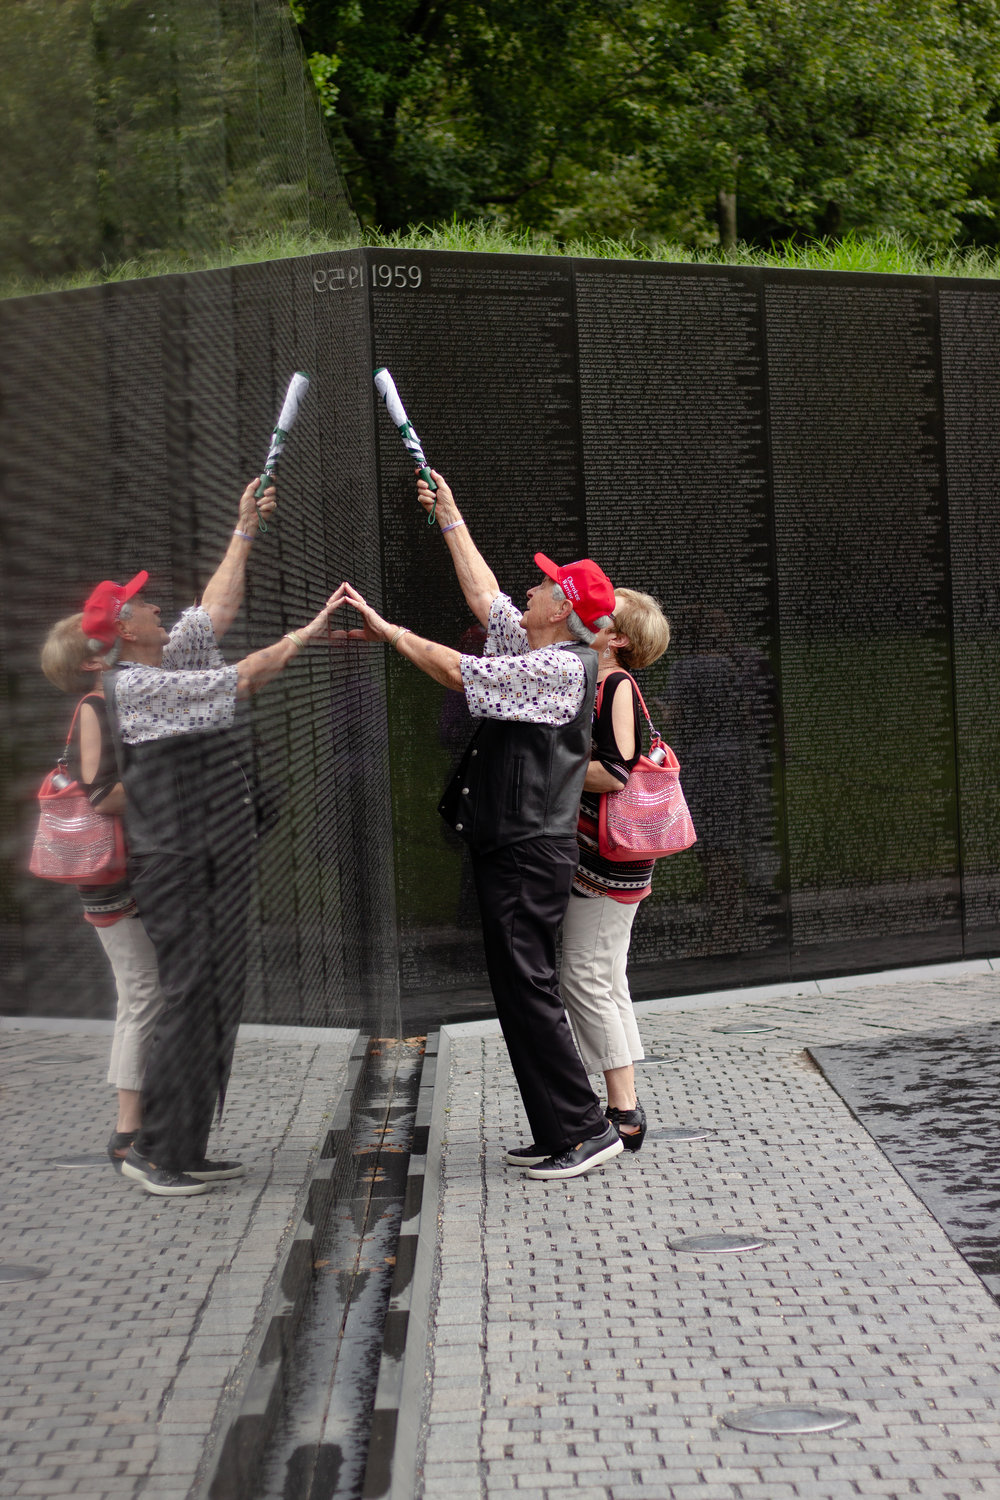 John Cockrum finds the name of his former student on the wall of the Vietnam Veterans Memorial.